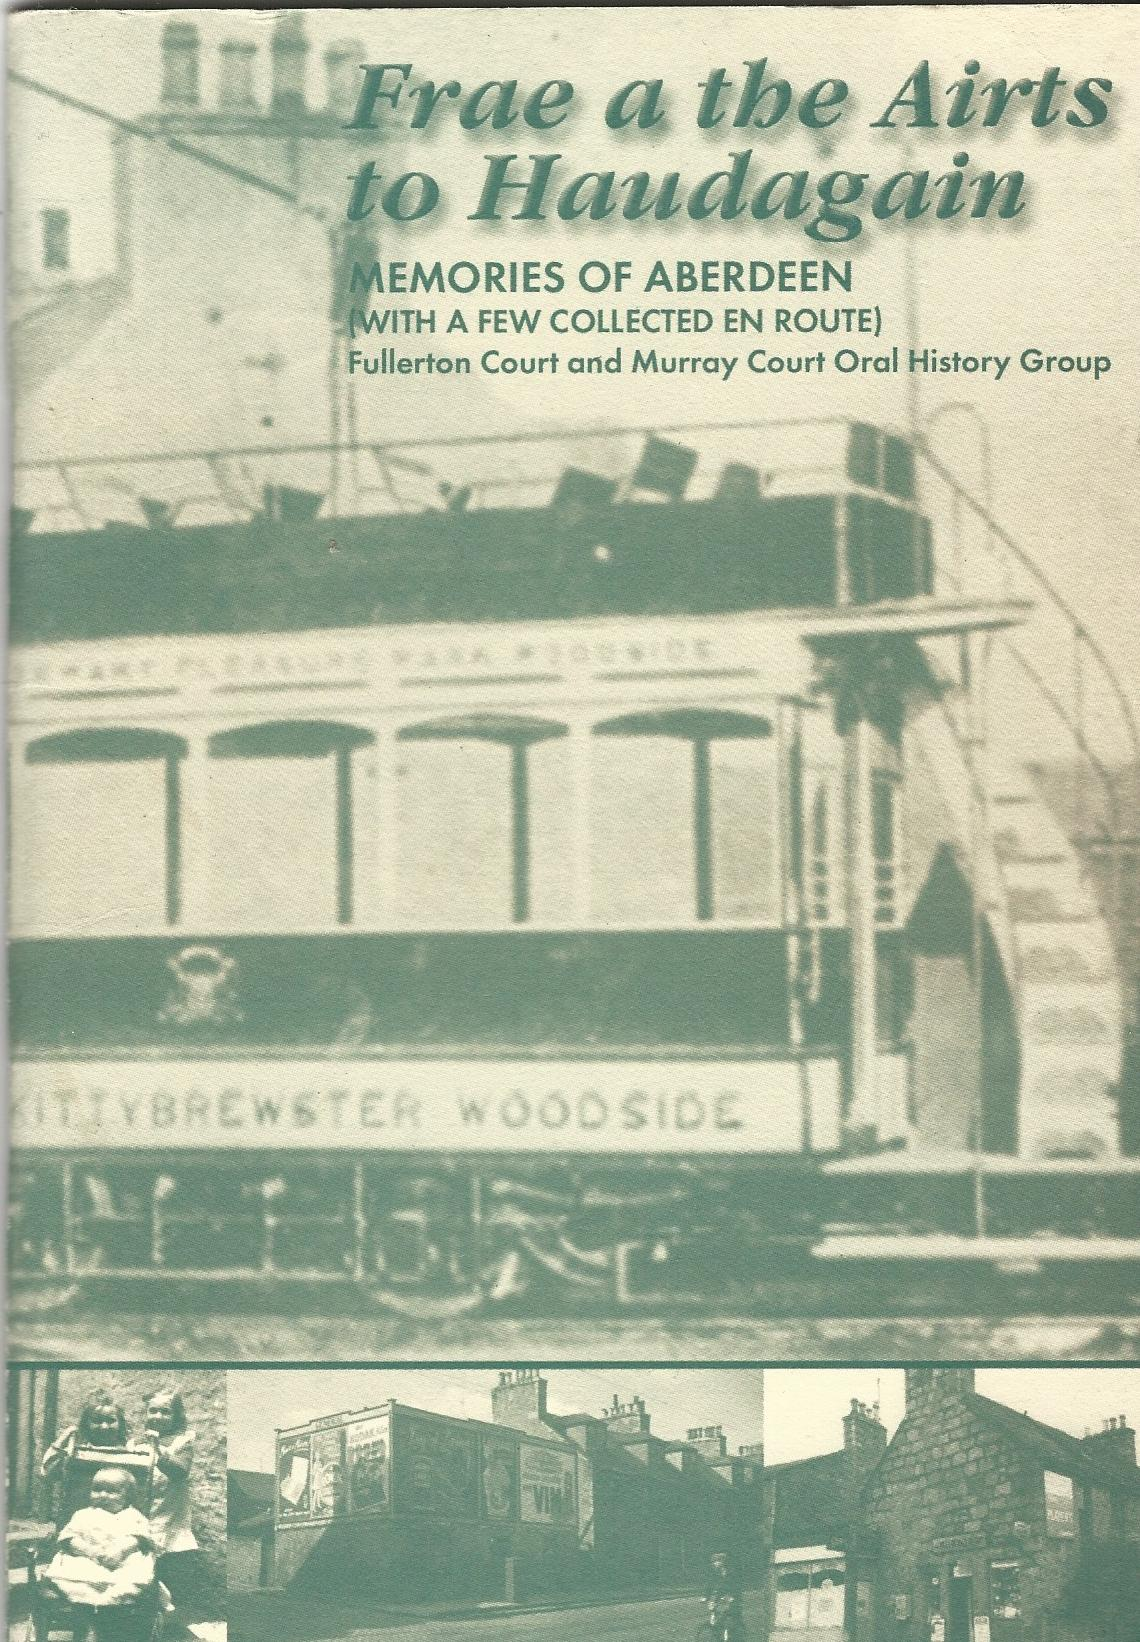 Image for Frae a the Airts to Haudagain: Memories of Aberdeen (with a few collected en route)